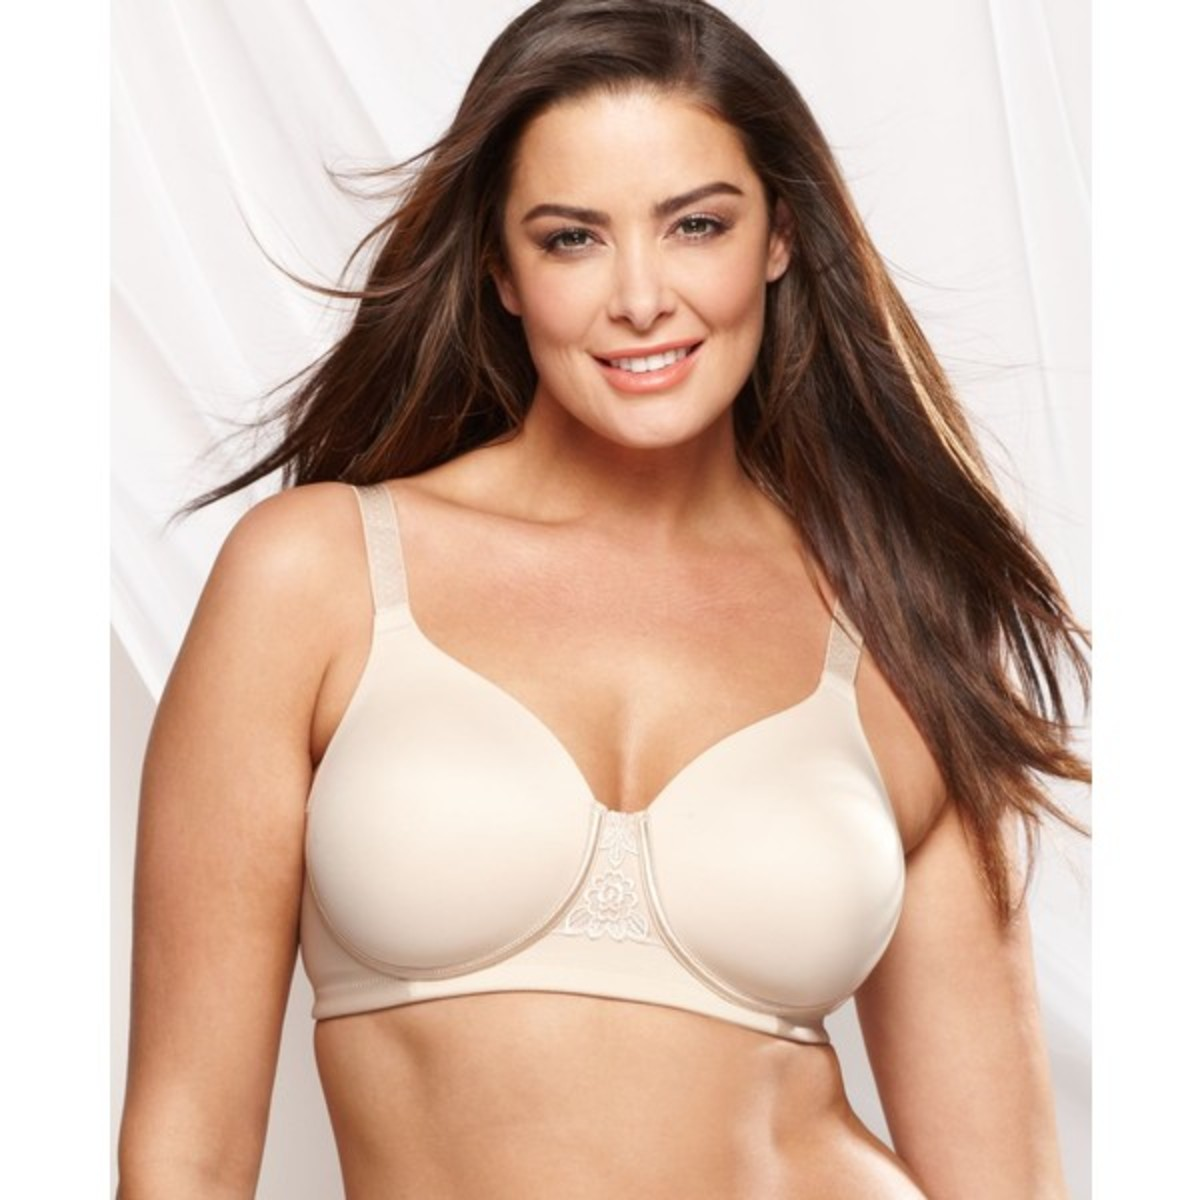 5 Reviews of the Best Minimizer Bra With Lift or Strapless ...